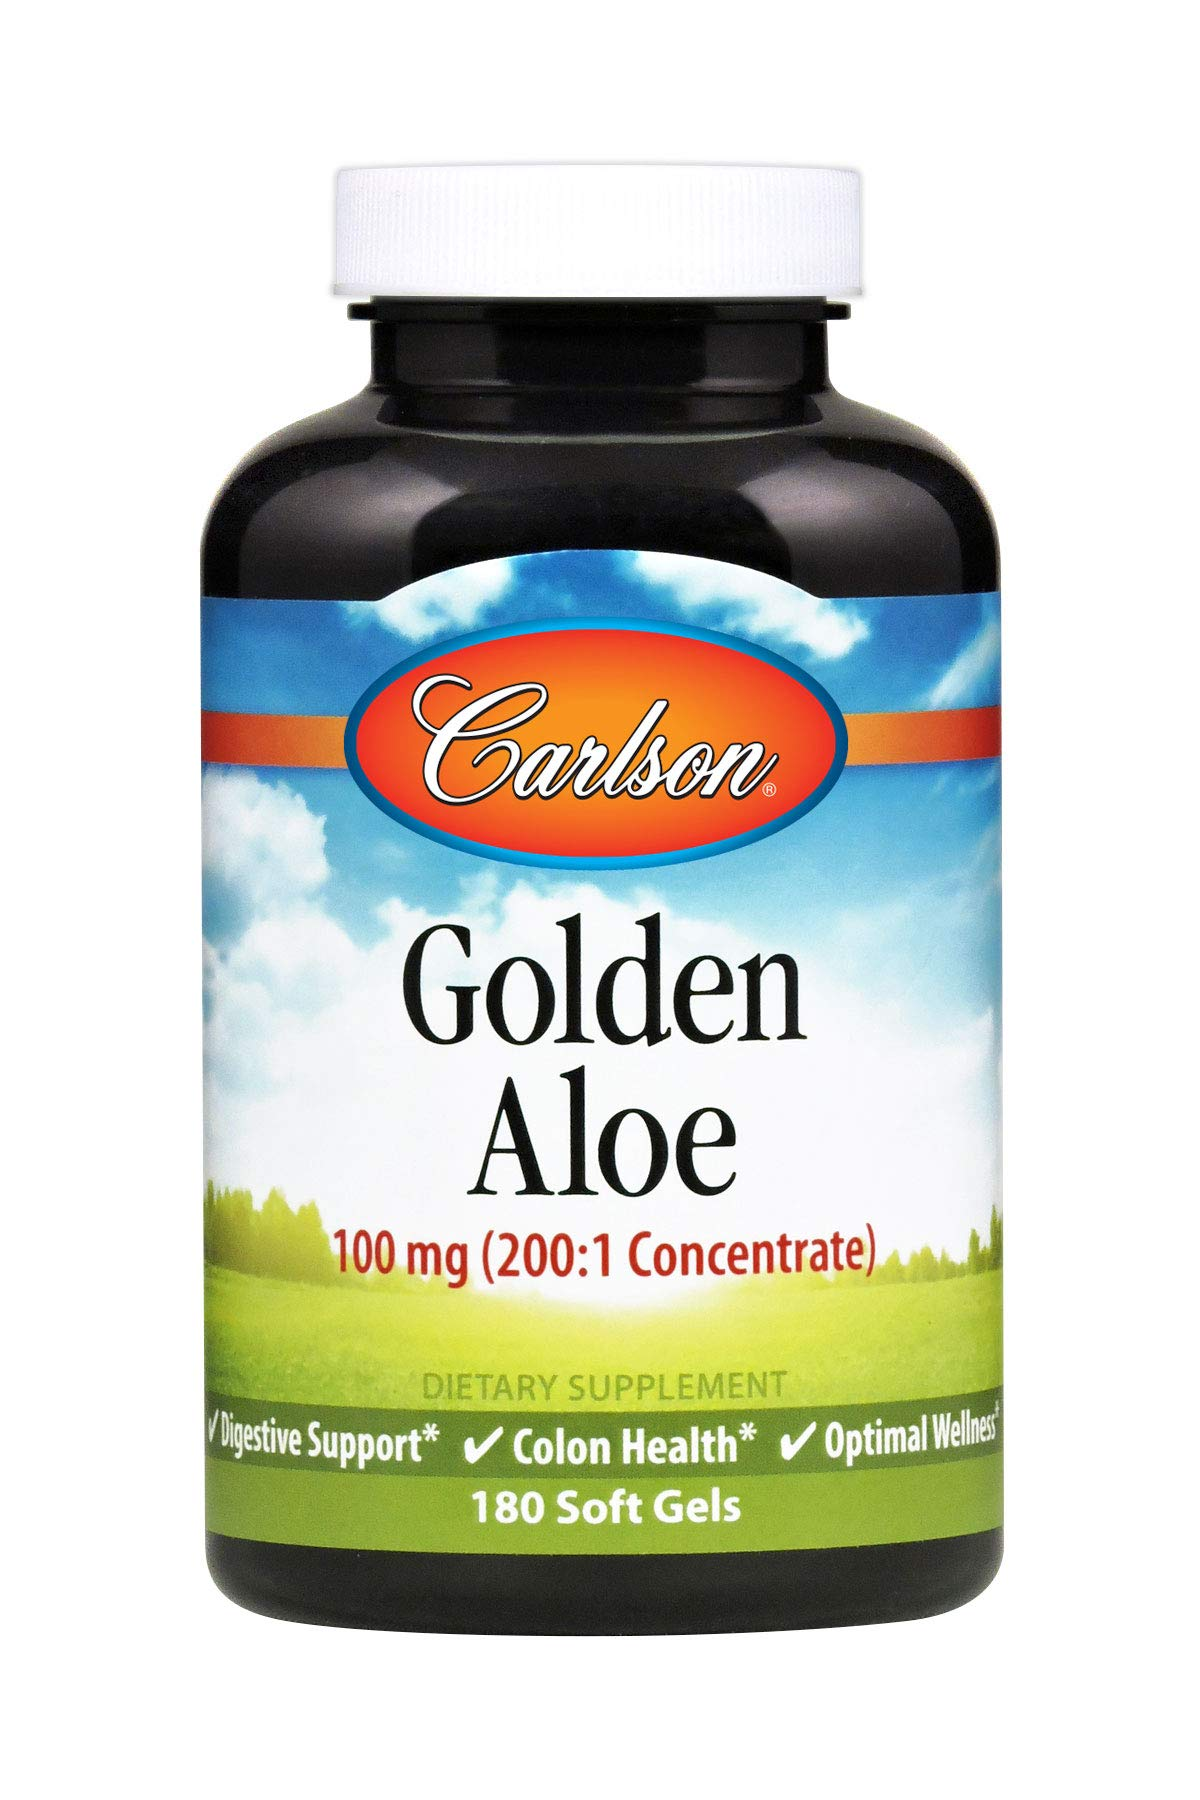 Carlson - Golden Aloe, 100 mg (200:1 Concentrate), Digestive Support & Colon Health, Optimal Wellness, 180 Soft gels